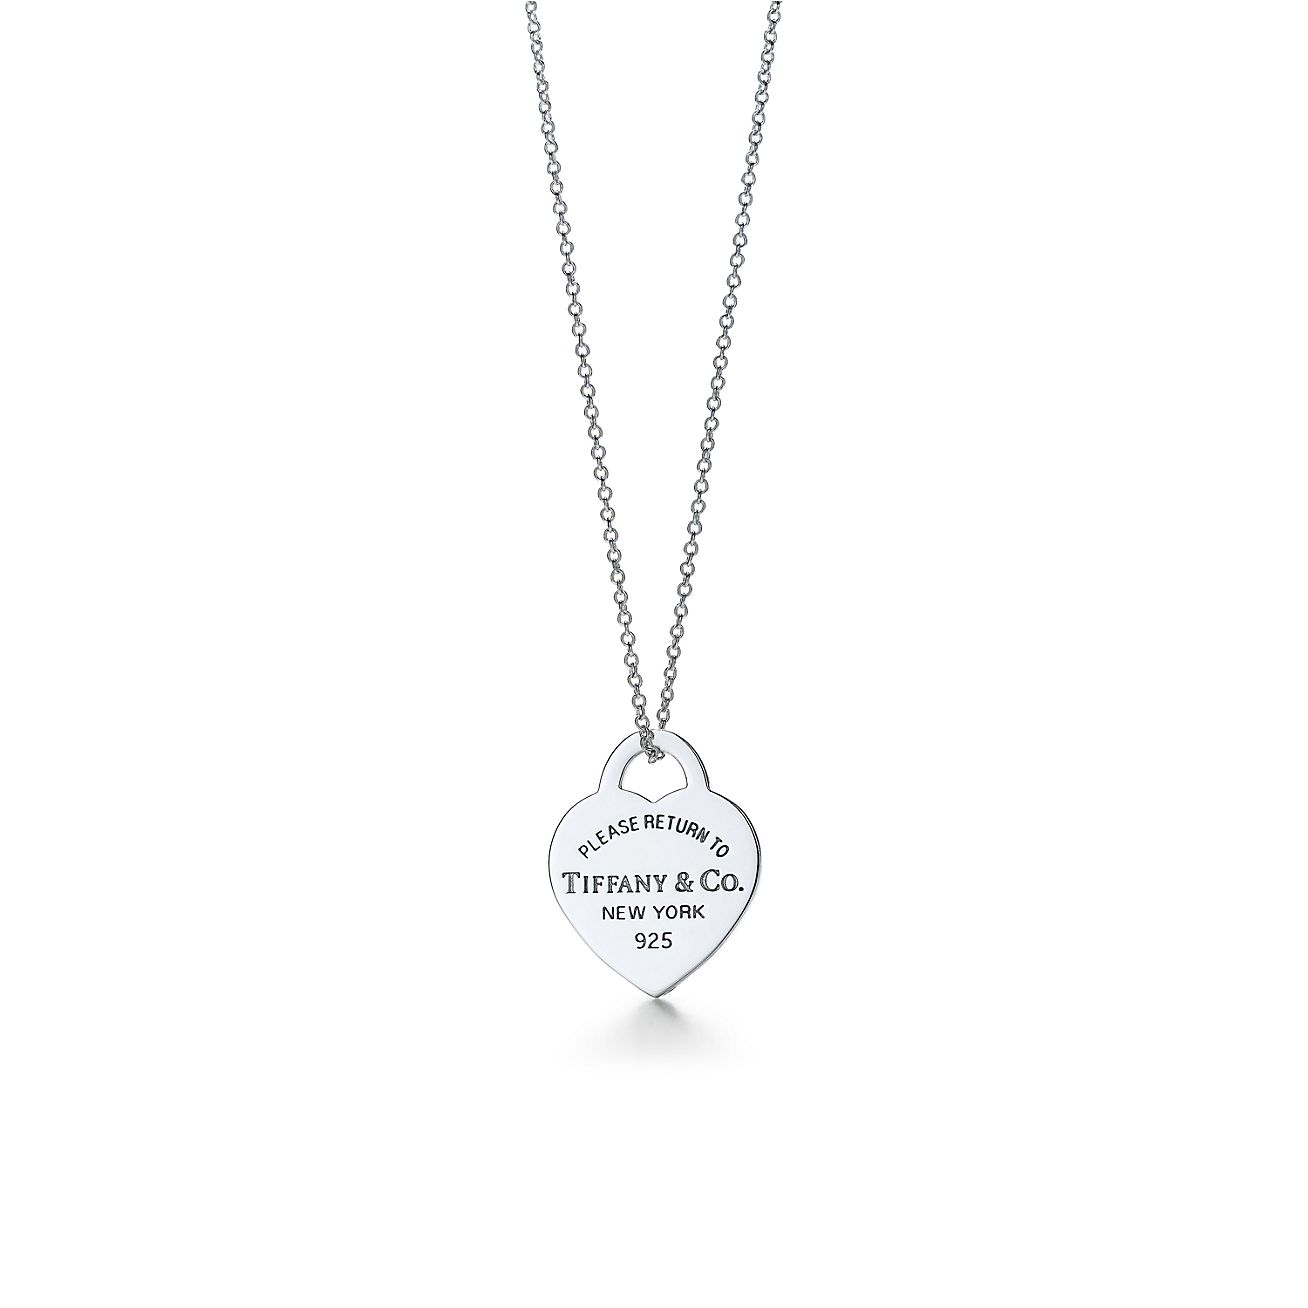 Jewelry Necklaces Pendants Return To Tiffany Heart Tag Pendant Grp01461 Tiffany Chain Necklace